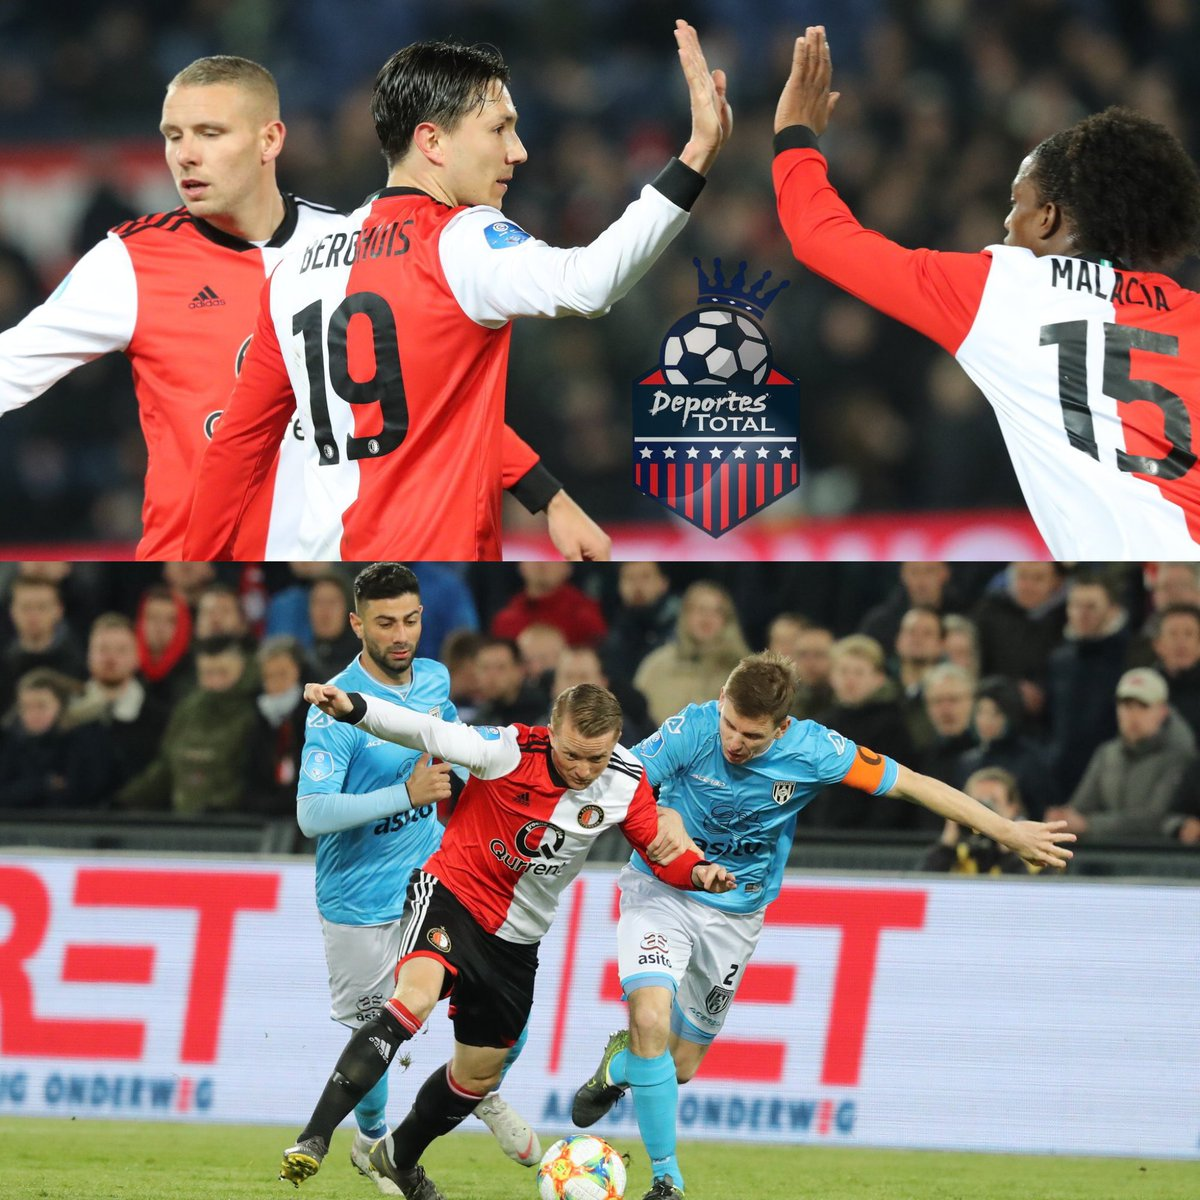 Deportes Total's photo on heracles